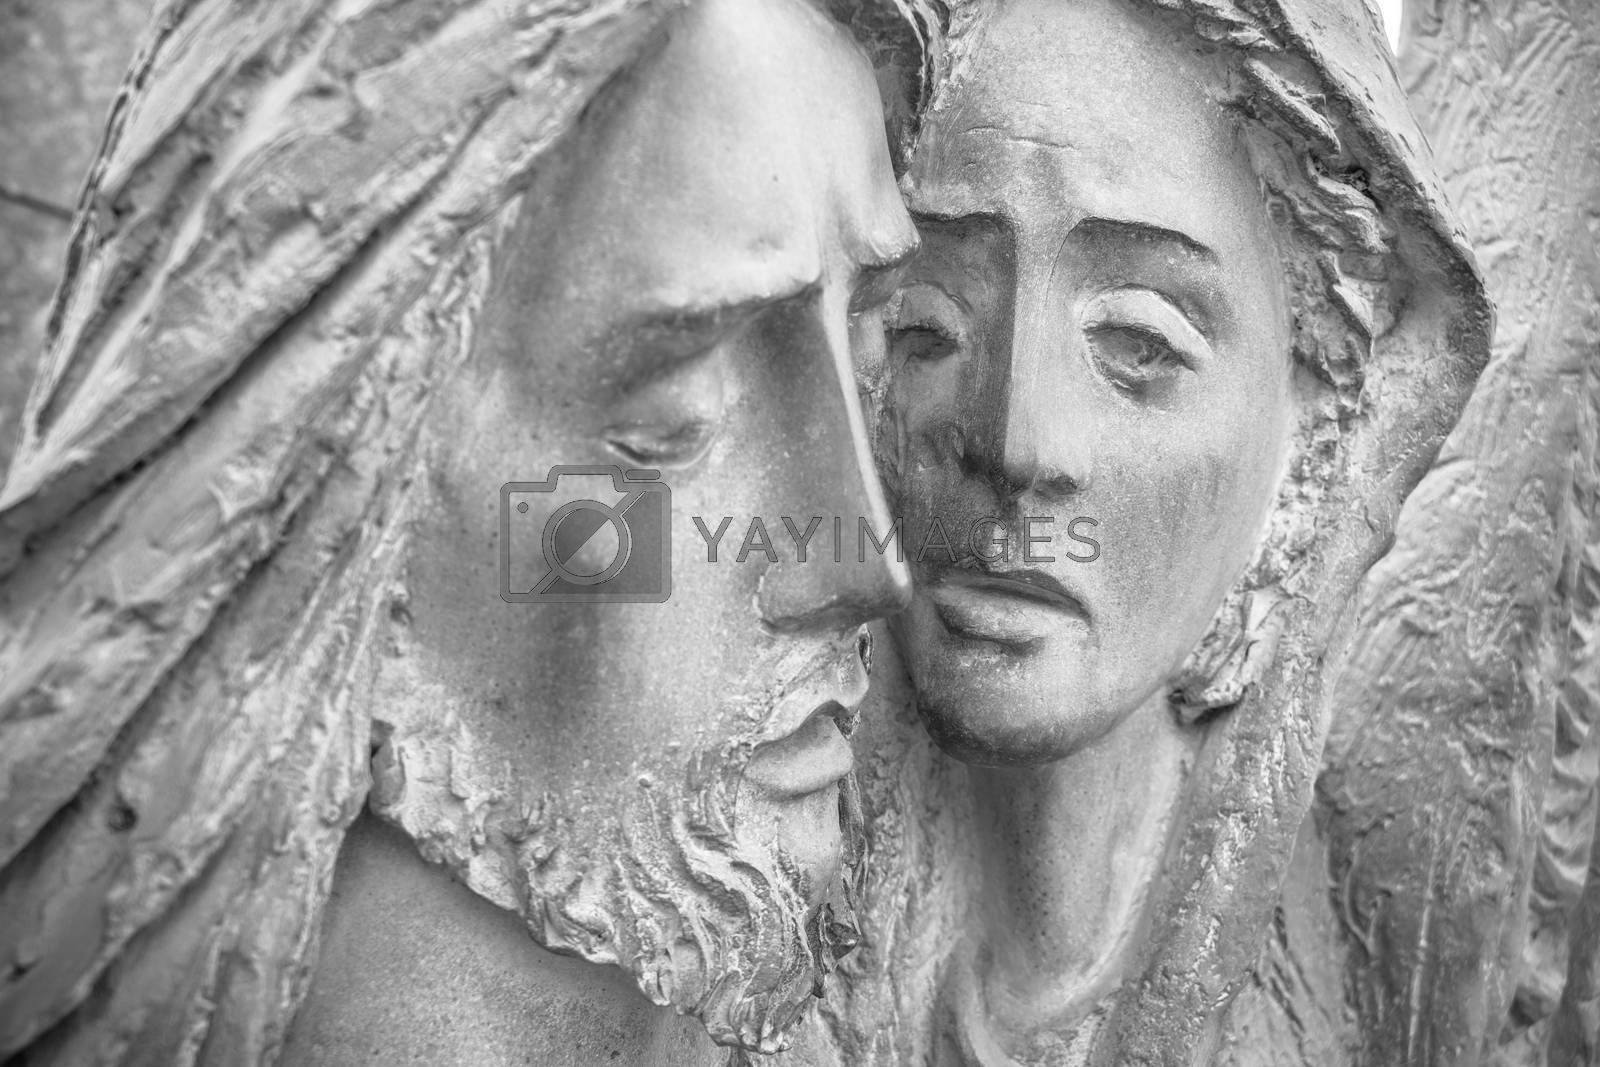 Bas-relief in bronze representing The Pity of Michelangelo. Faces of Holy Mary mother and Jesus Christ after the Crucifixion.